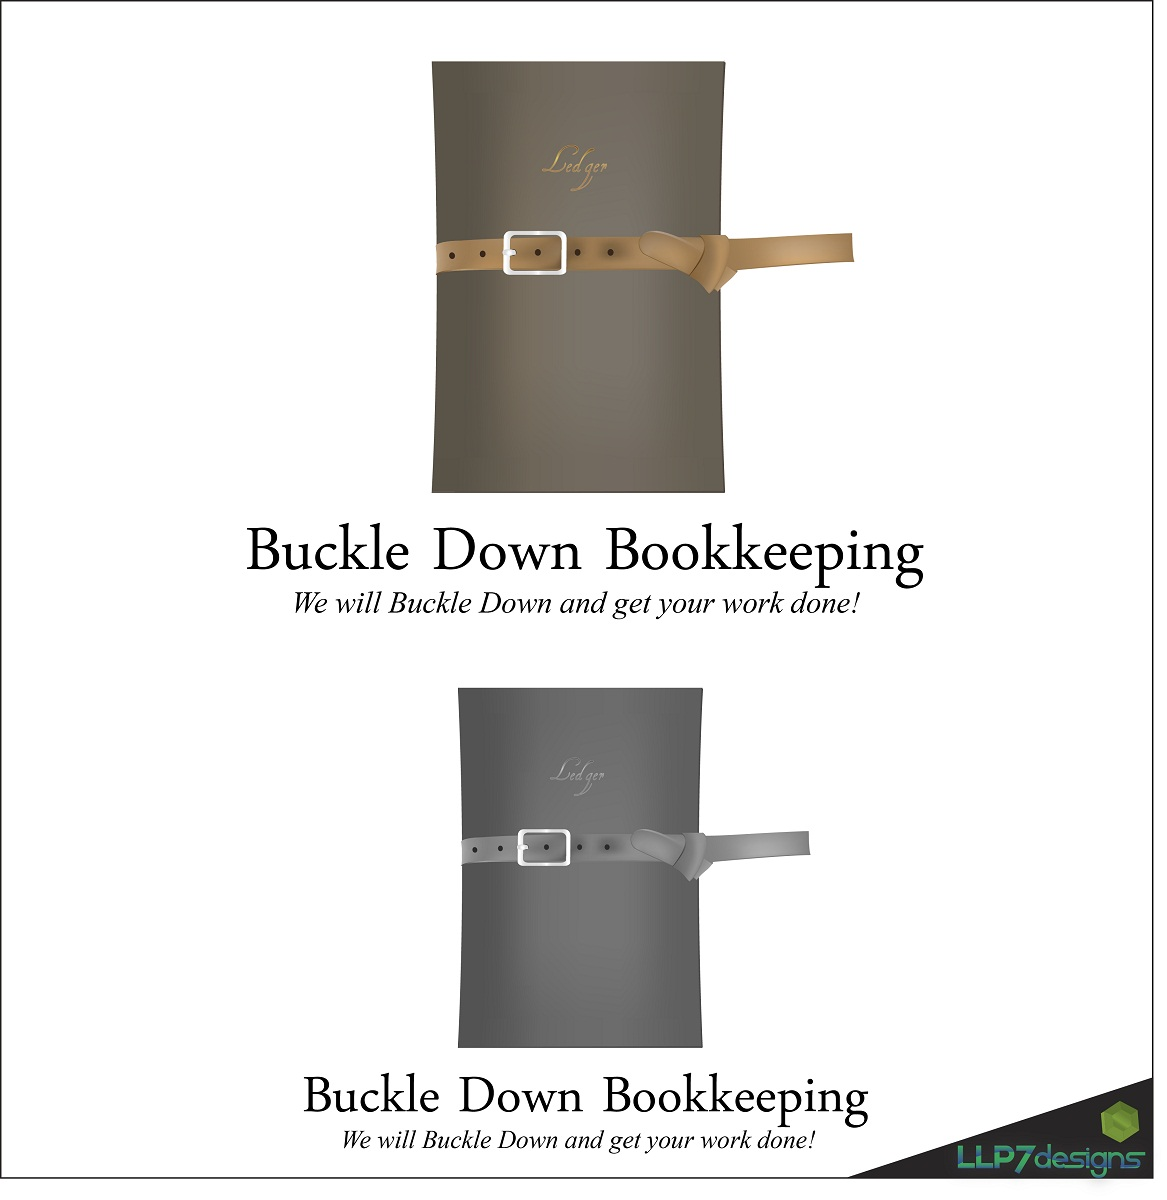 Logo Design by LLP7 - Entry No. 23 in the Logo Design Contest Unique Logo Design Wanted for Buckle Down Bookkeeping Service.